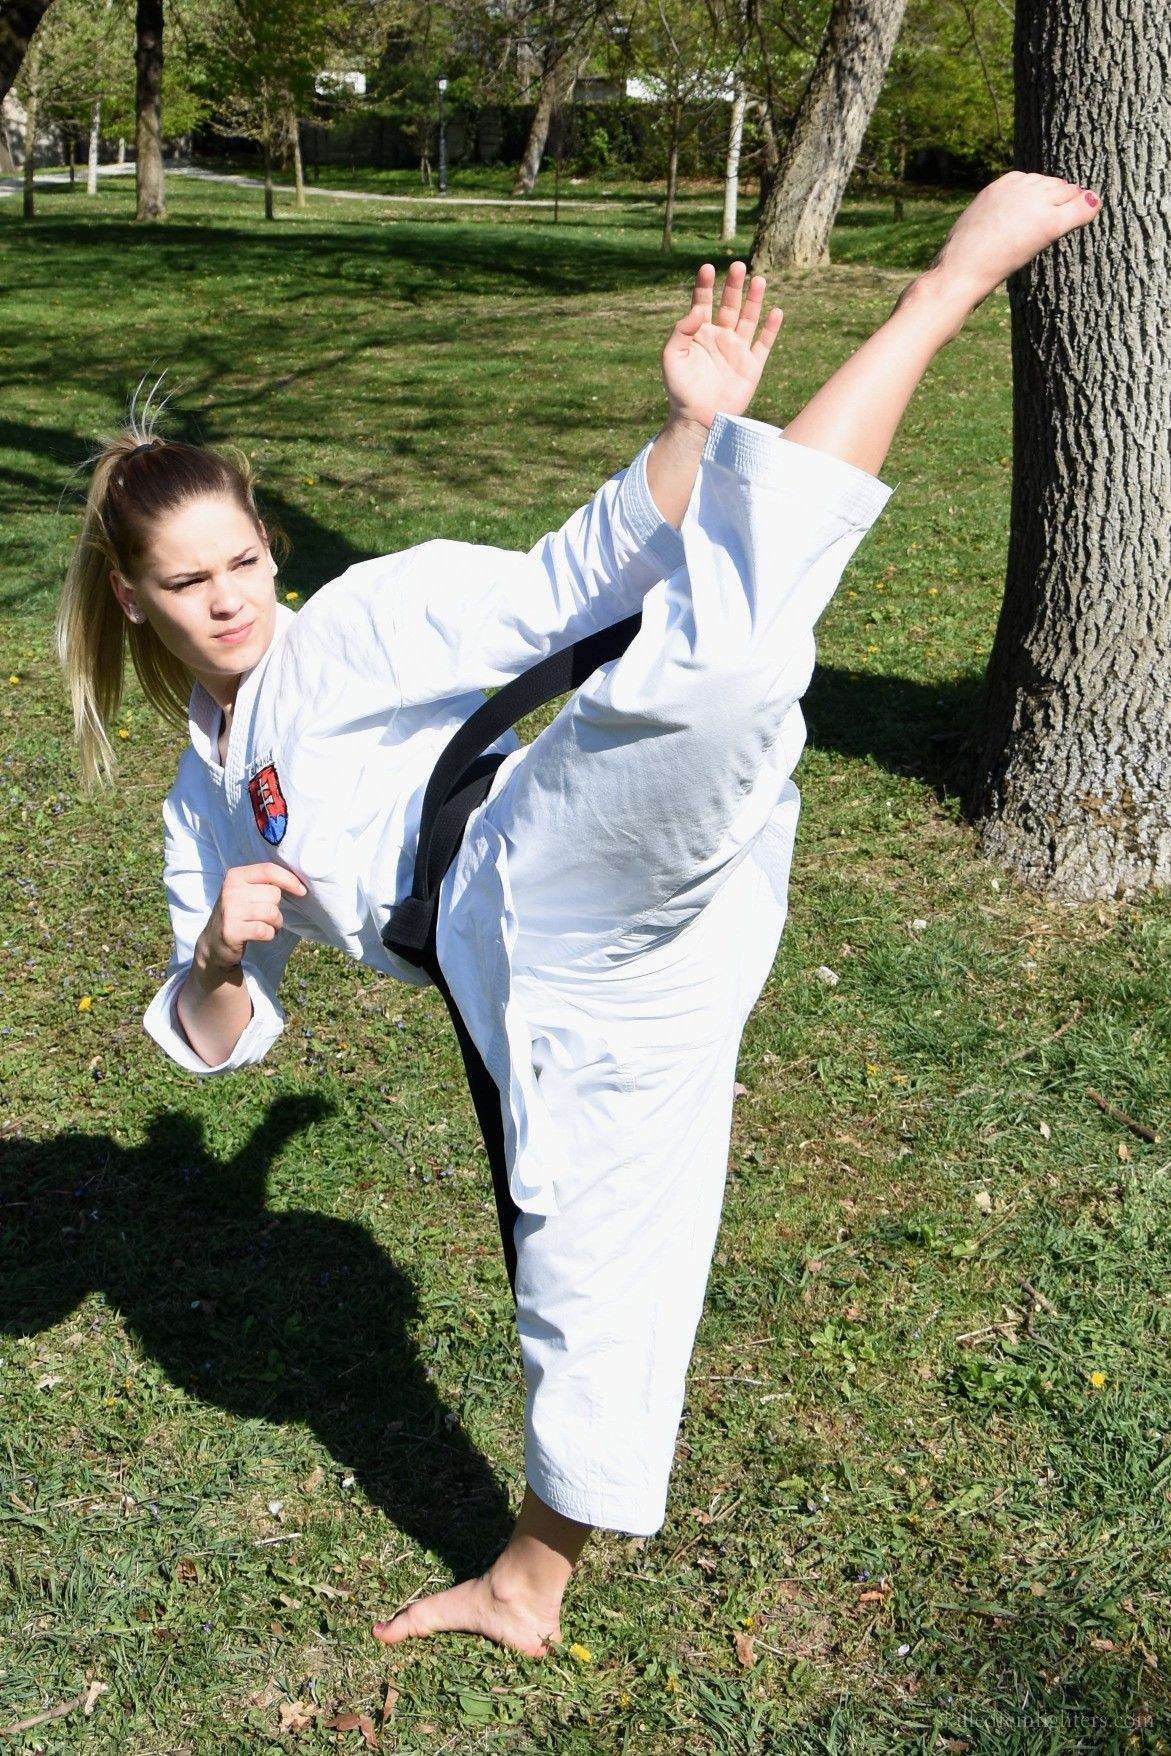 Pin By Tuu Bouknight On Karate Martial Arts Girl Martial Arts Women Female Martial Artists